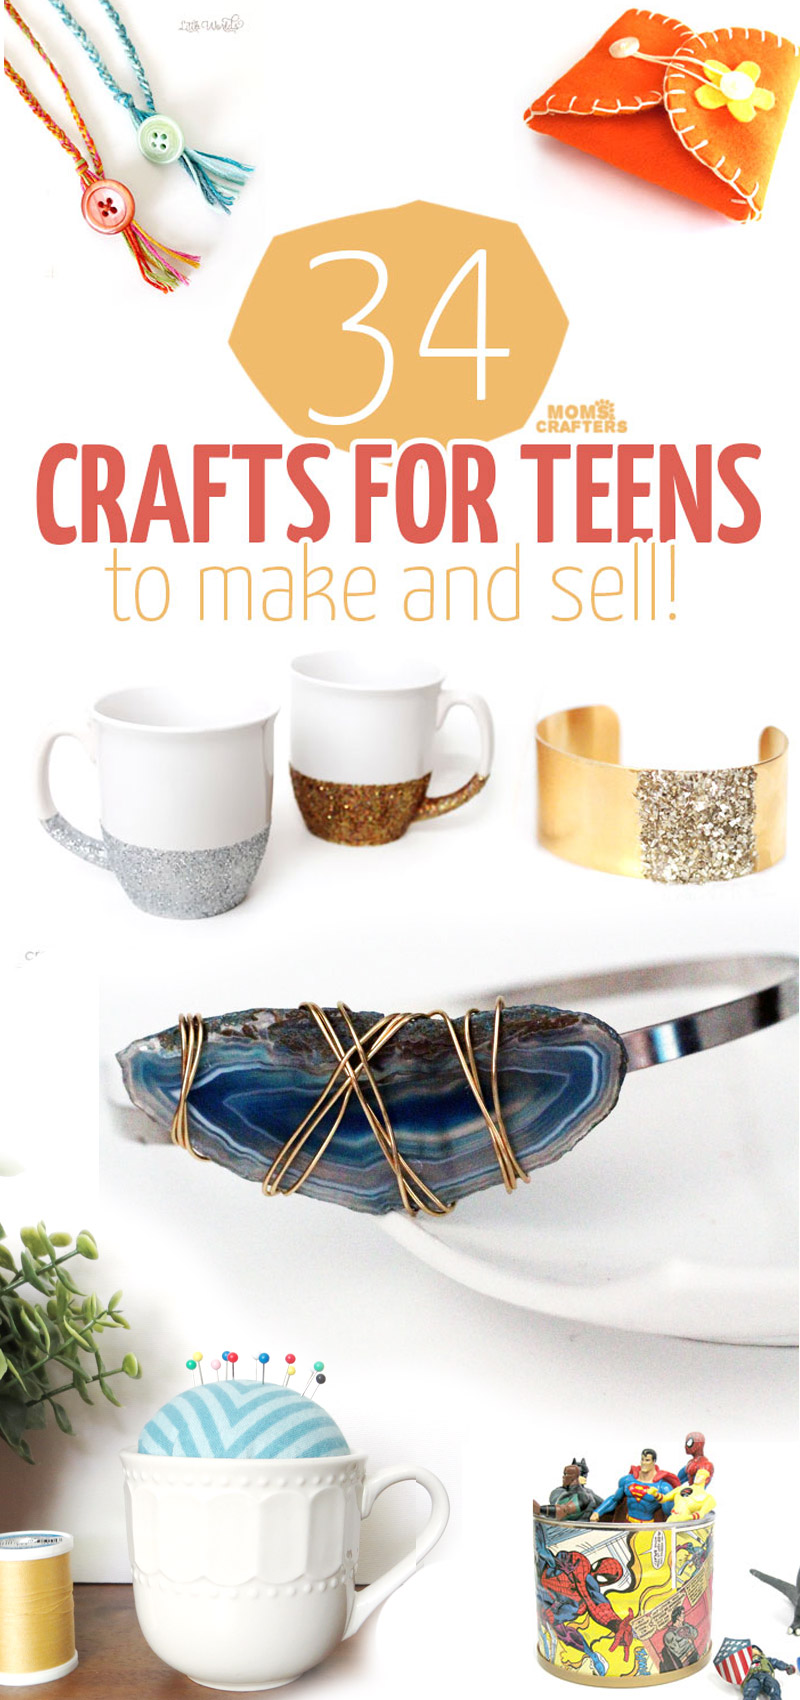 34 fun, functional crafts for teens to make and sell! What a great activity for teens and tweens - marketing handmade items and selling on Etsy! Here is a great list of DIY projects and ideas to start with. #teencrafts #diy #crafts